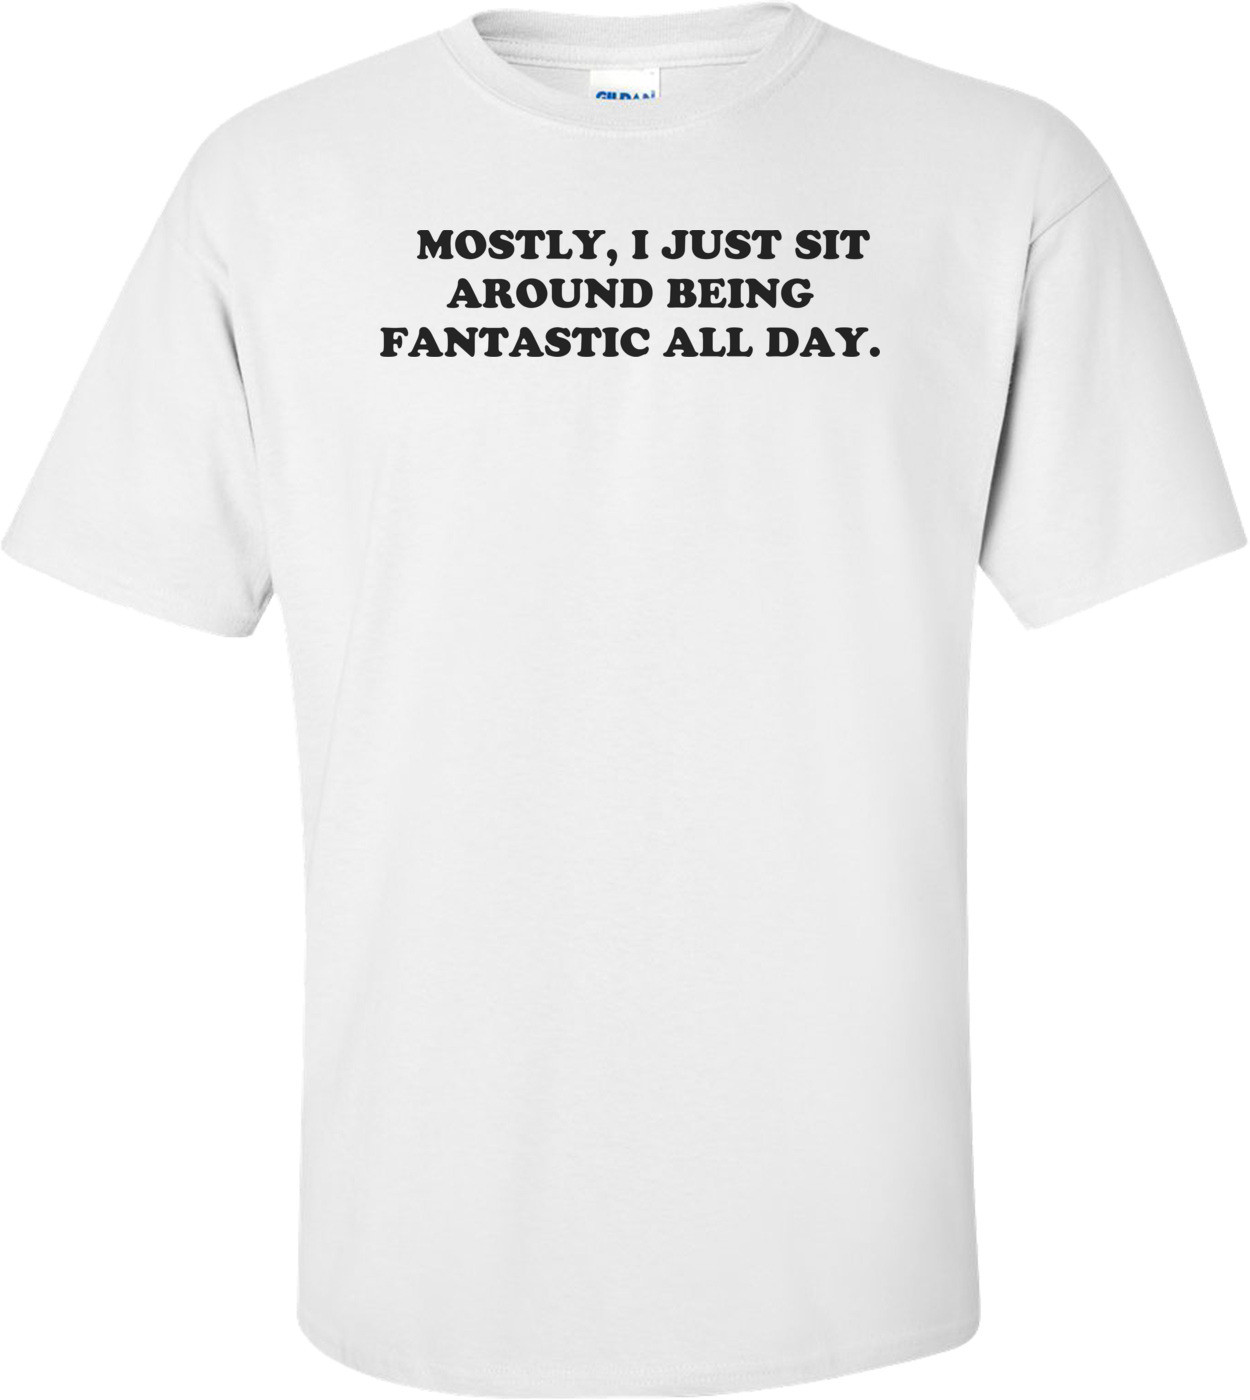 MOSTLY, I JUST SIT AROUND BEING FANTASTIC ALL DAY. Shirt